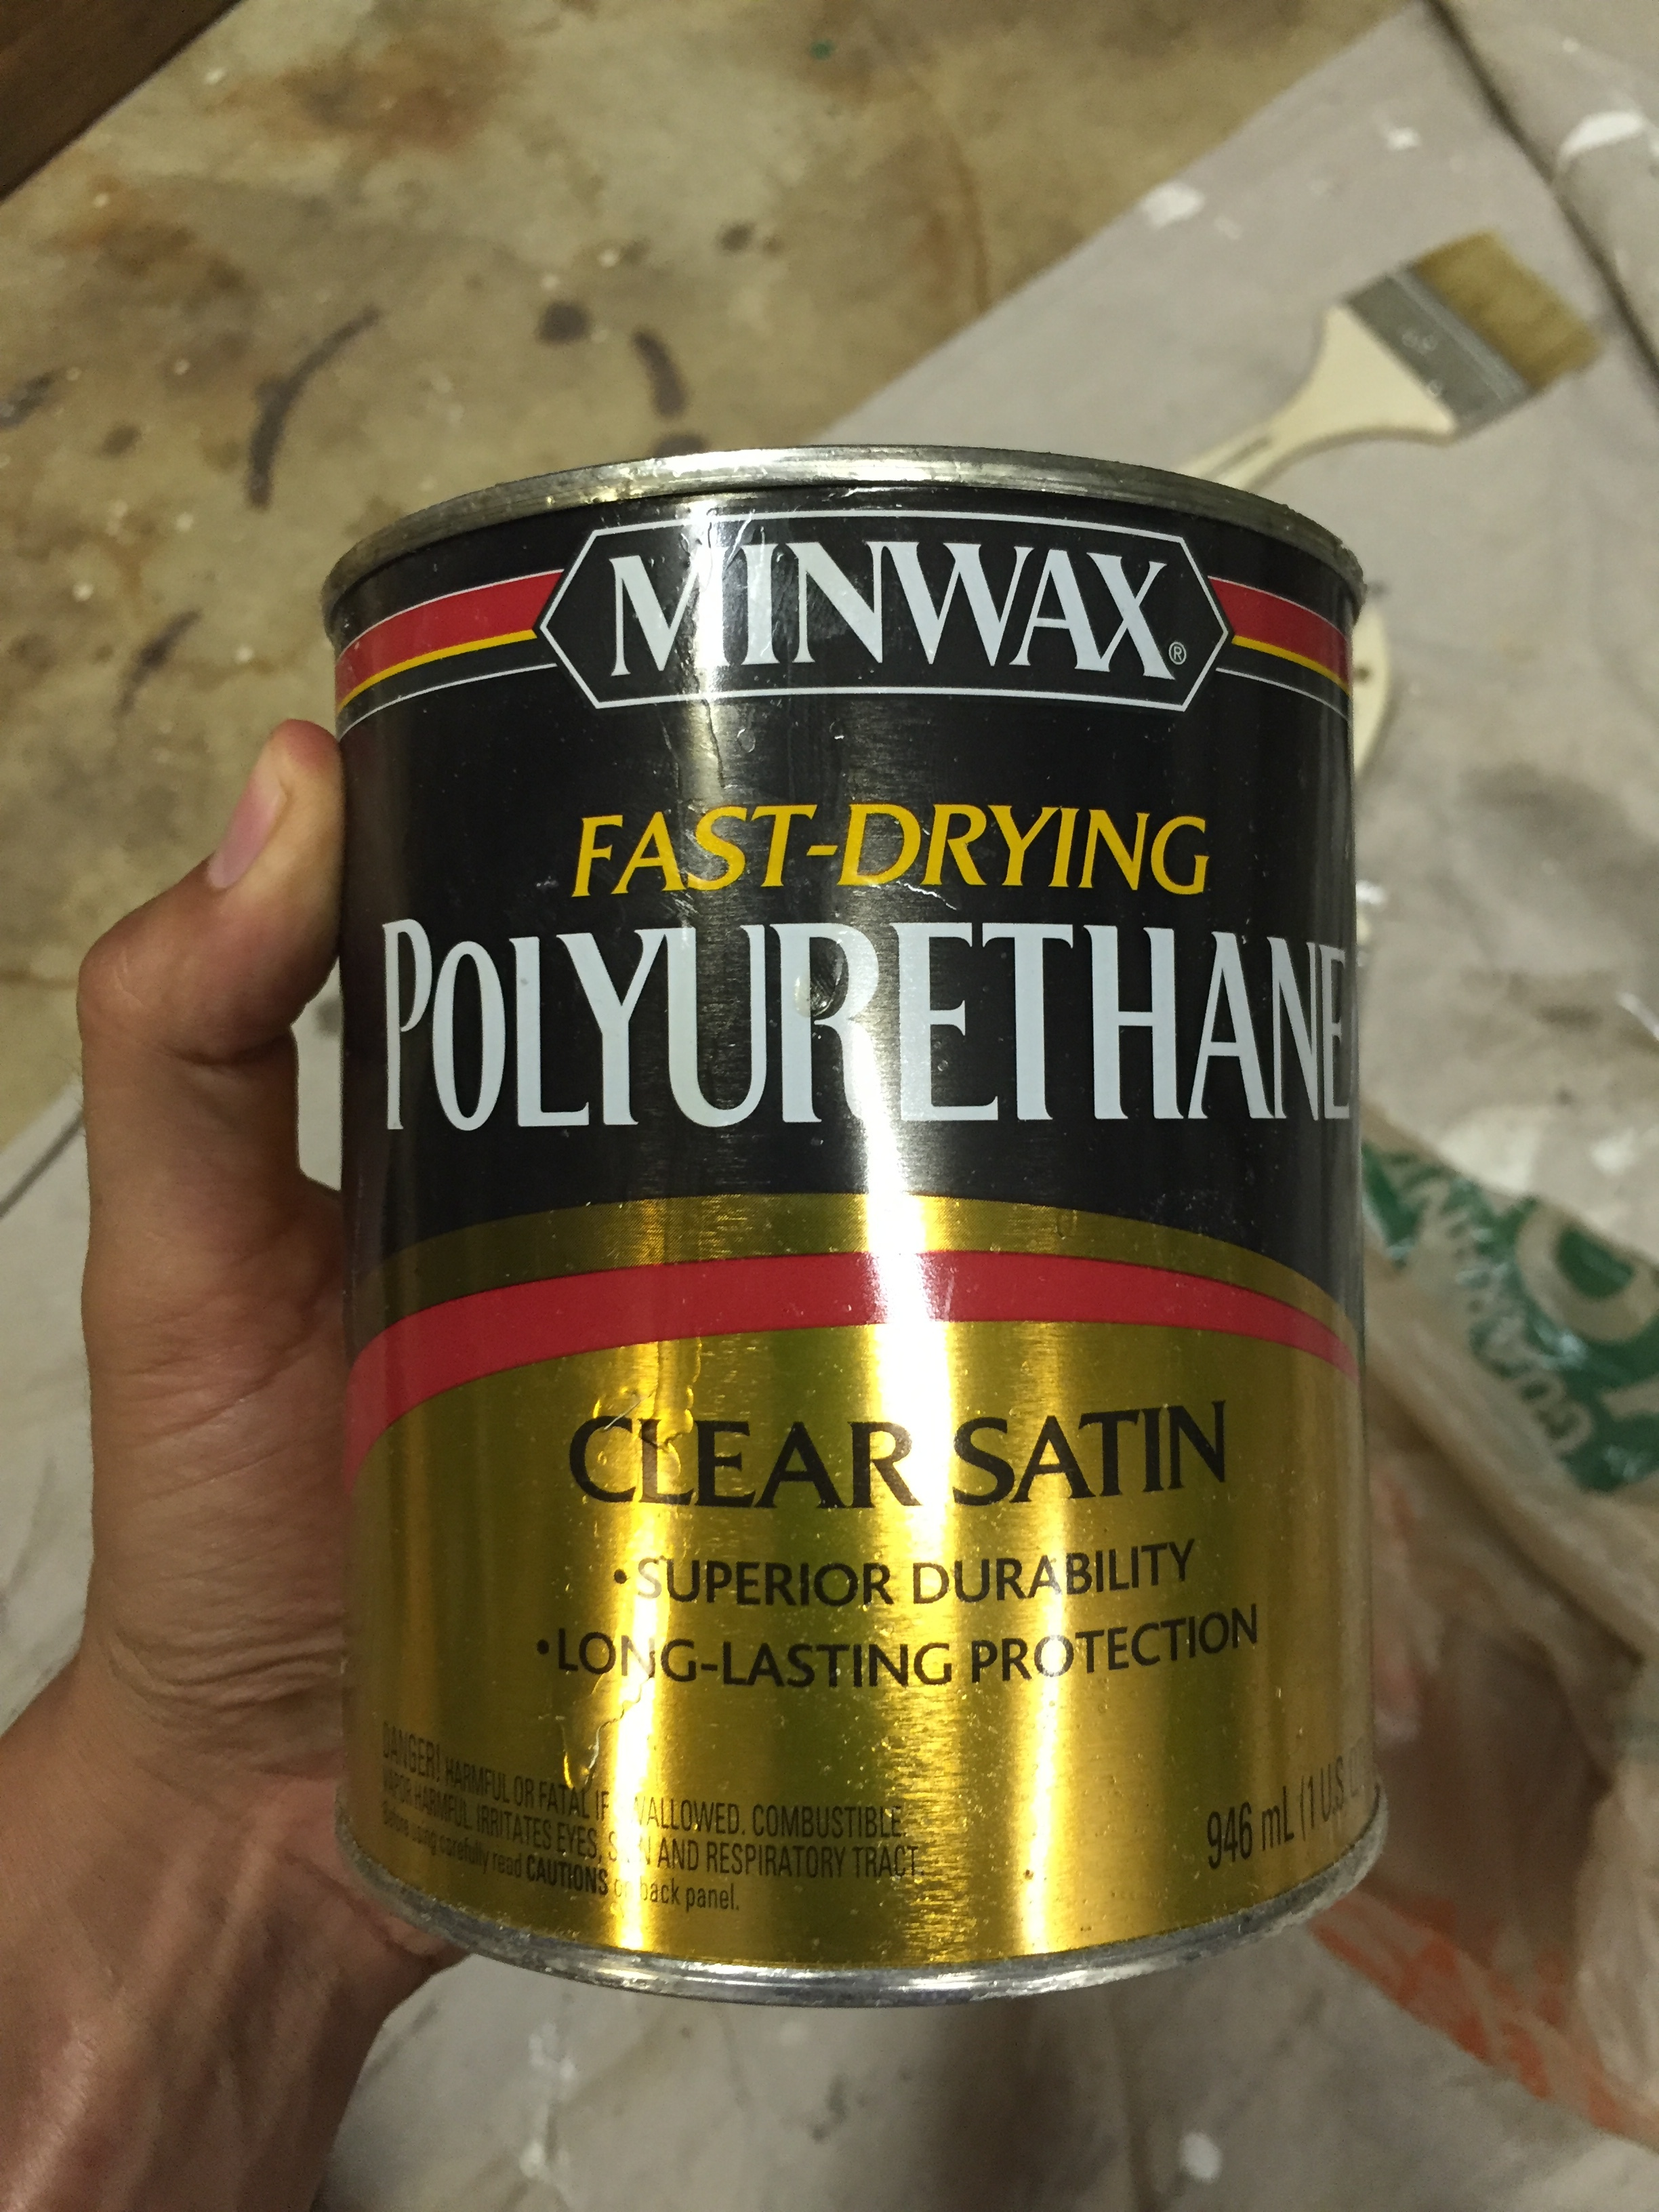 After it all dried, we put one coat of Polyurethane to seal it.